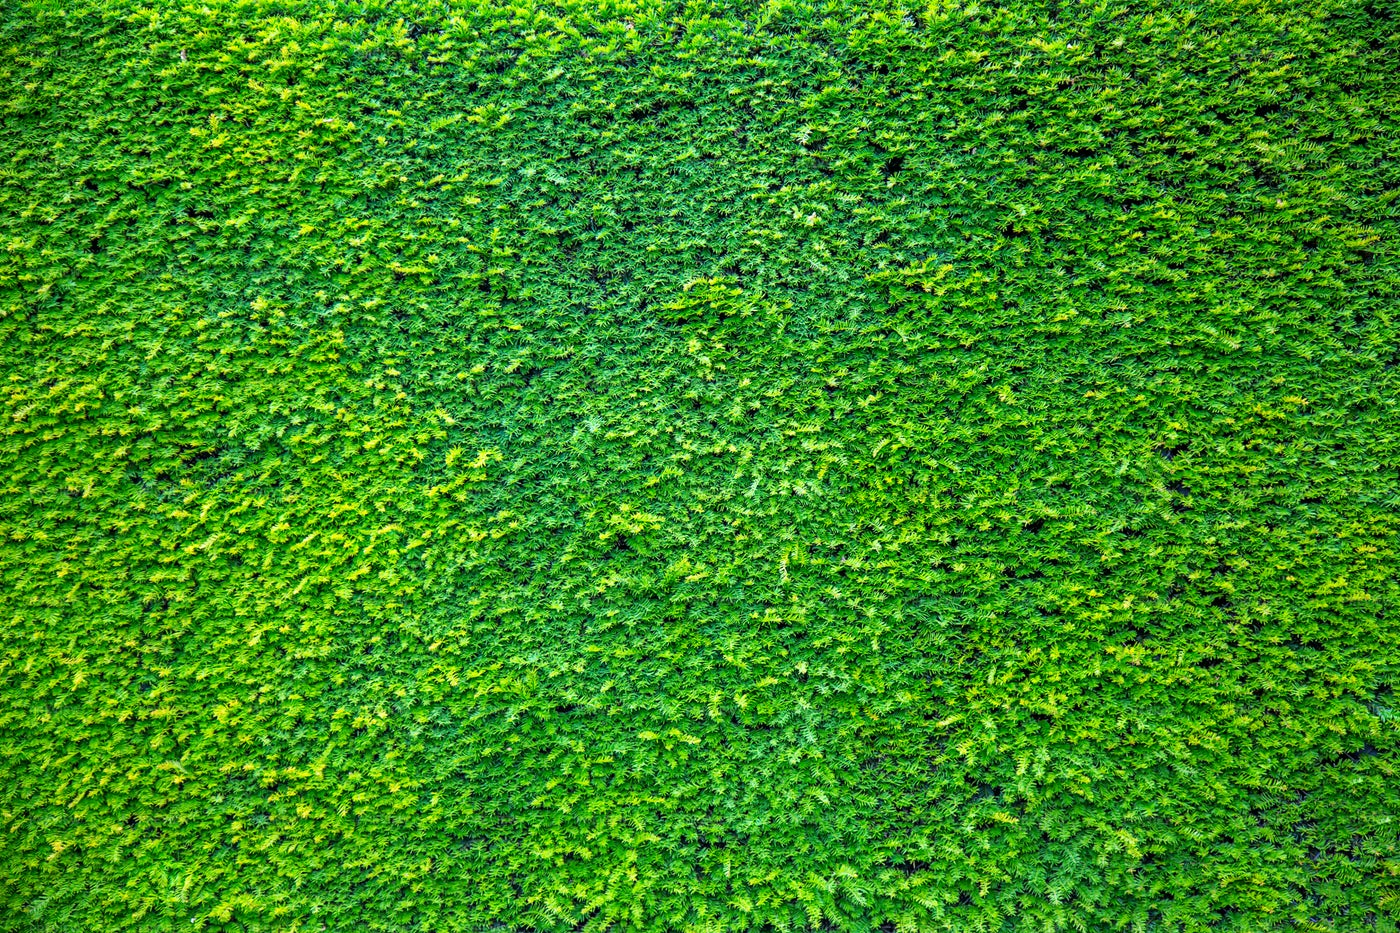 Background Of Green Branches: Stock Photos